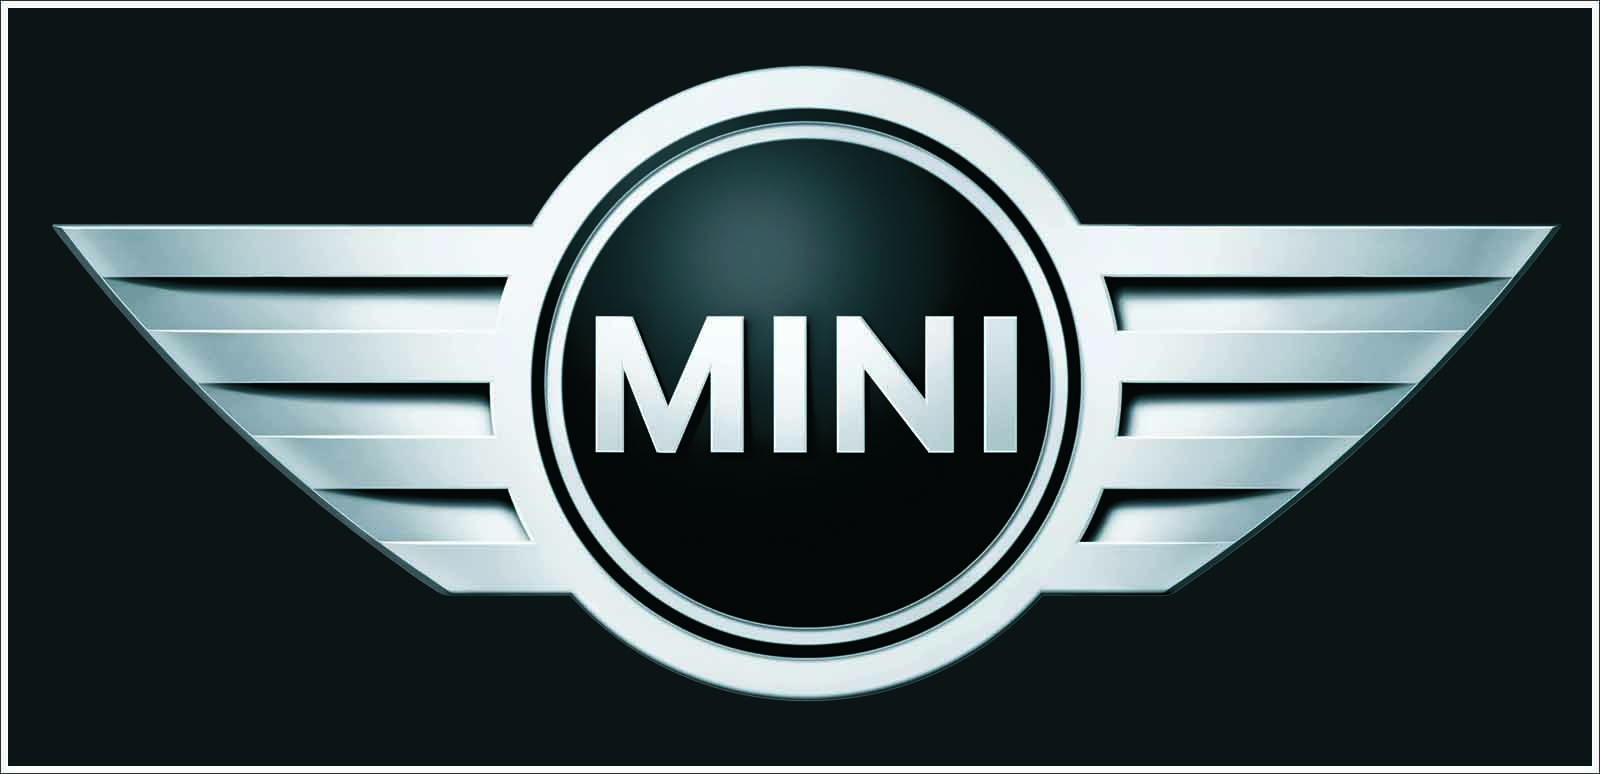 Mini Logo - Mini Logo Meaning and History, latest models | World Cars Brands